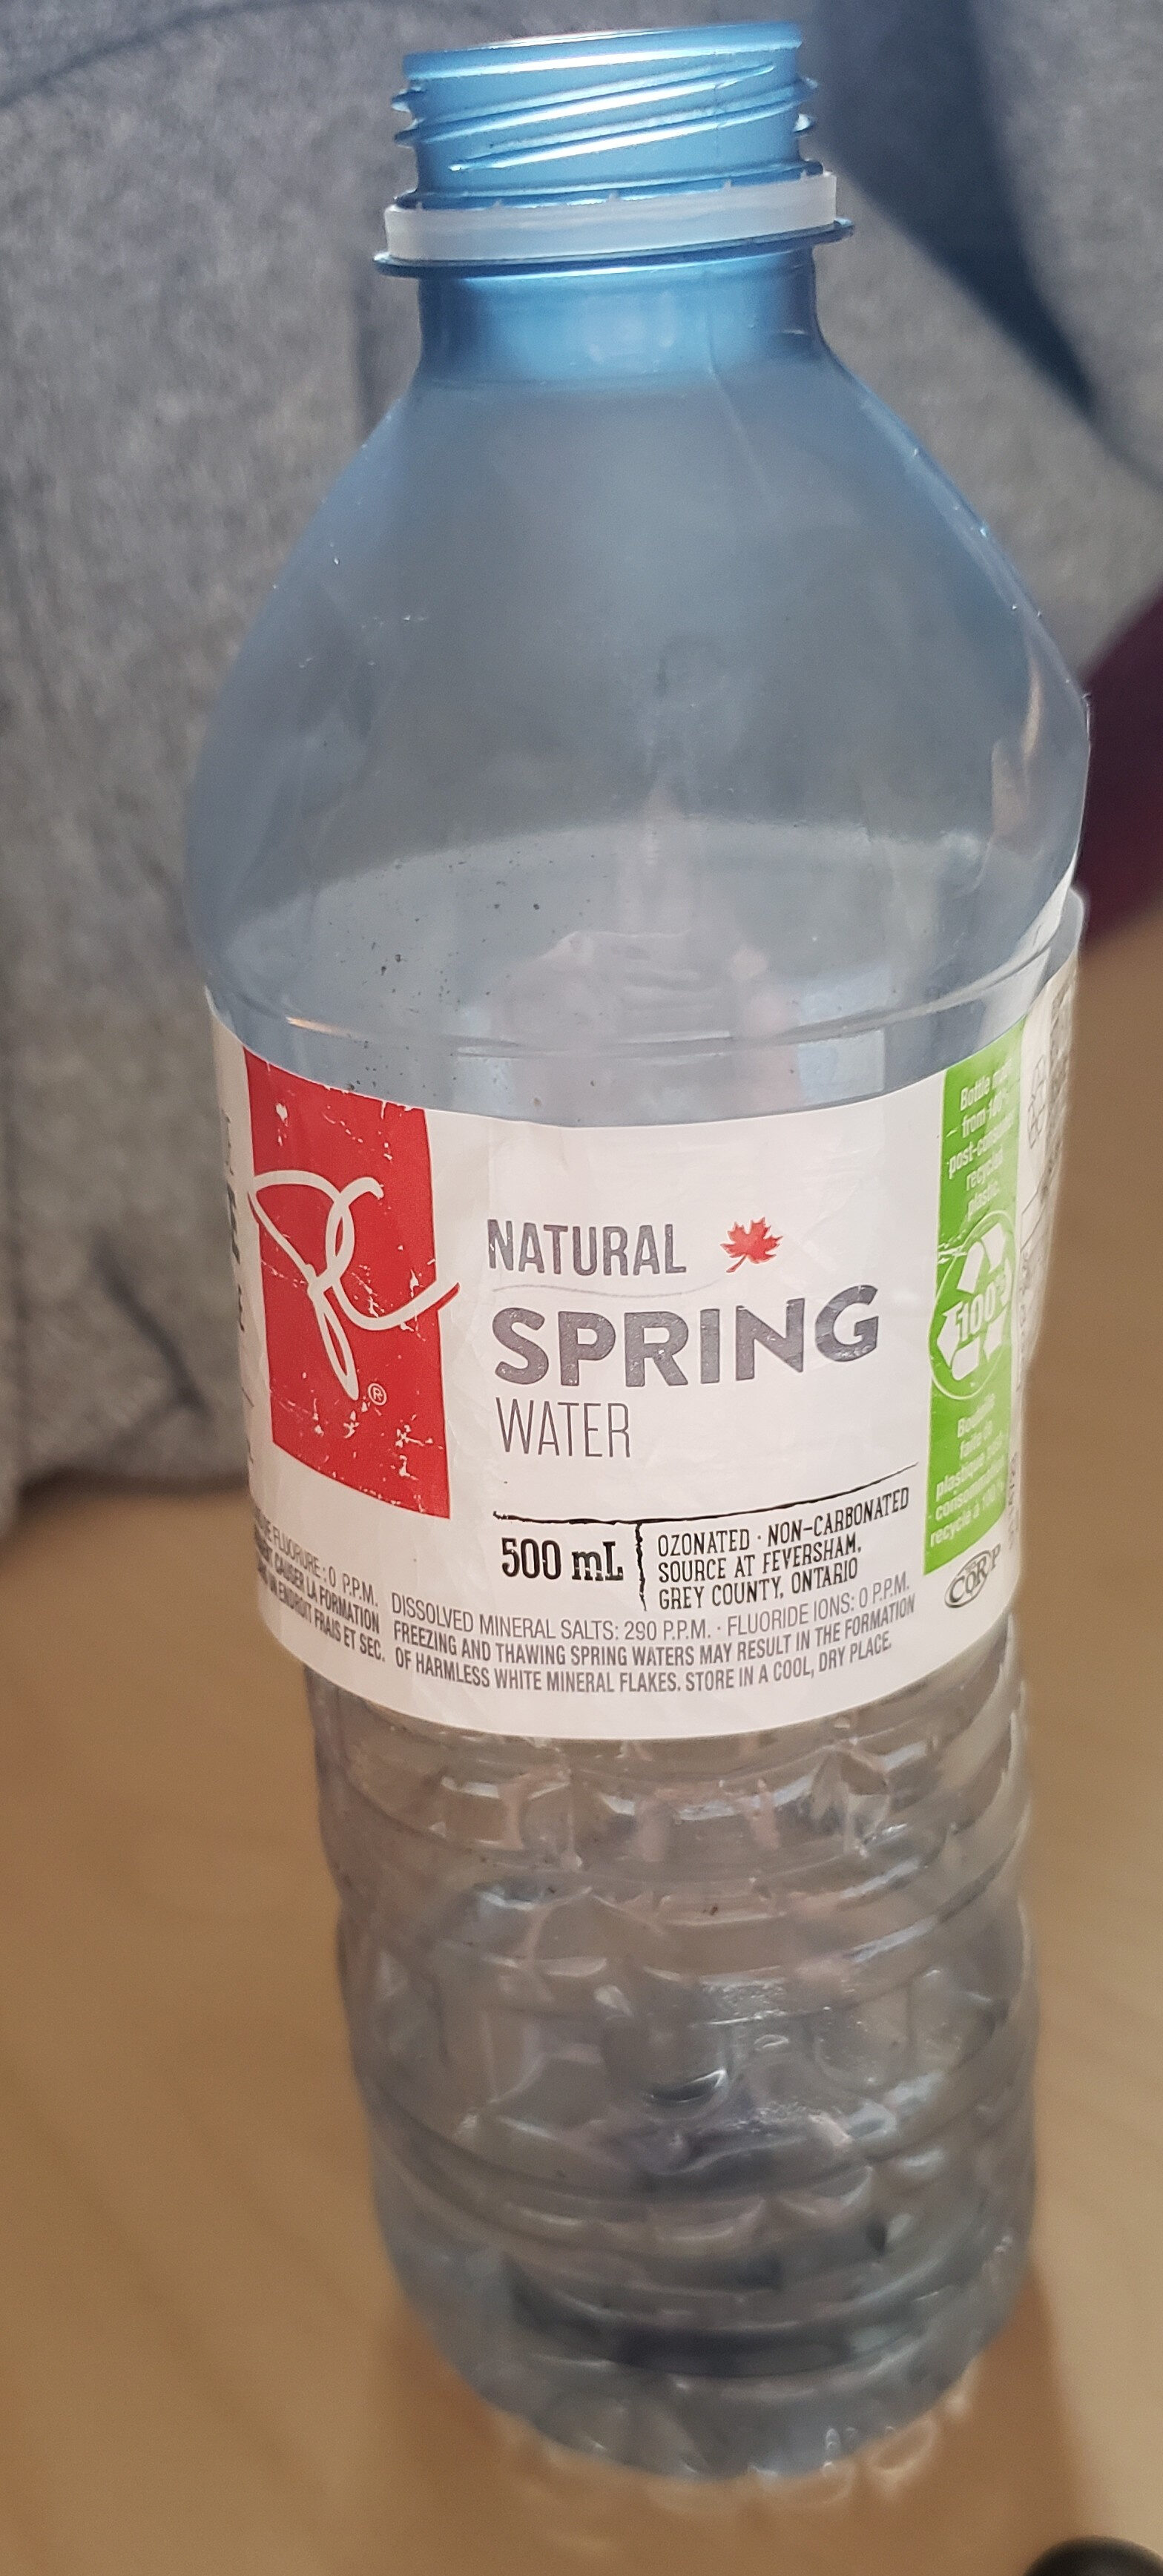 natural spring water - Produit - en